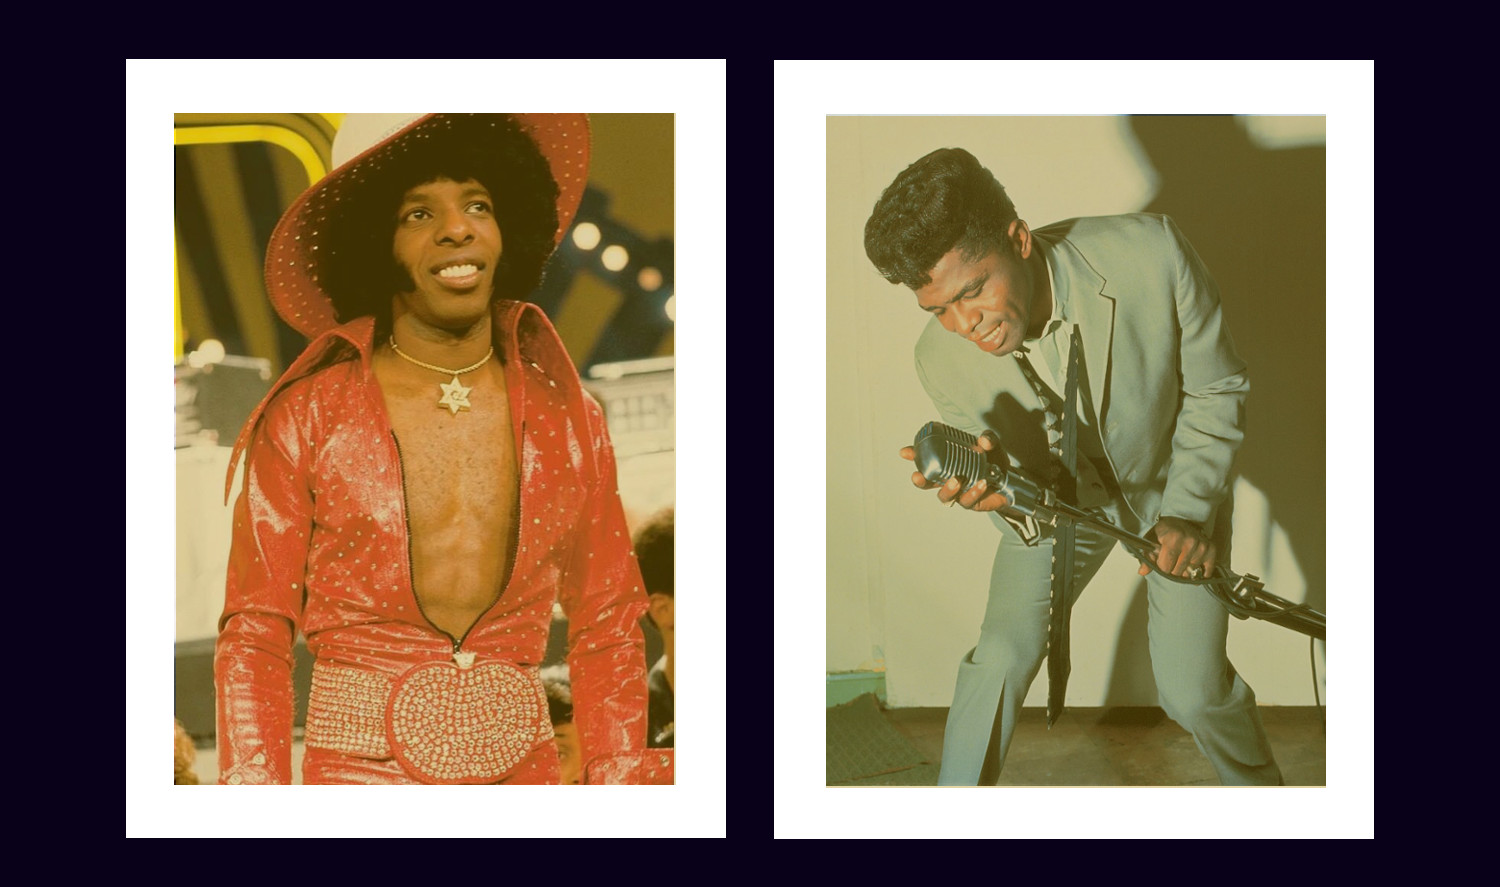 James Brown + Sly Stone